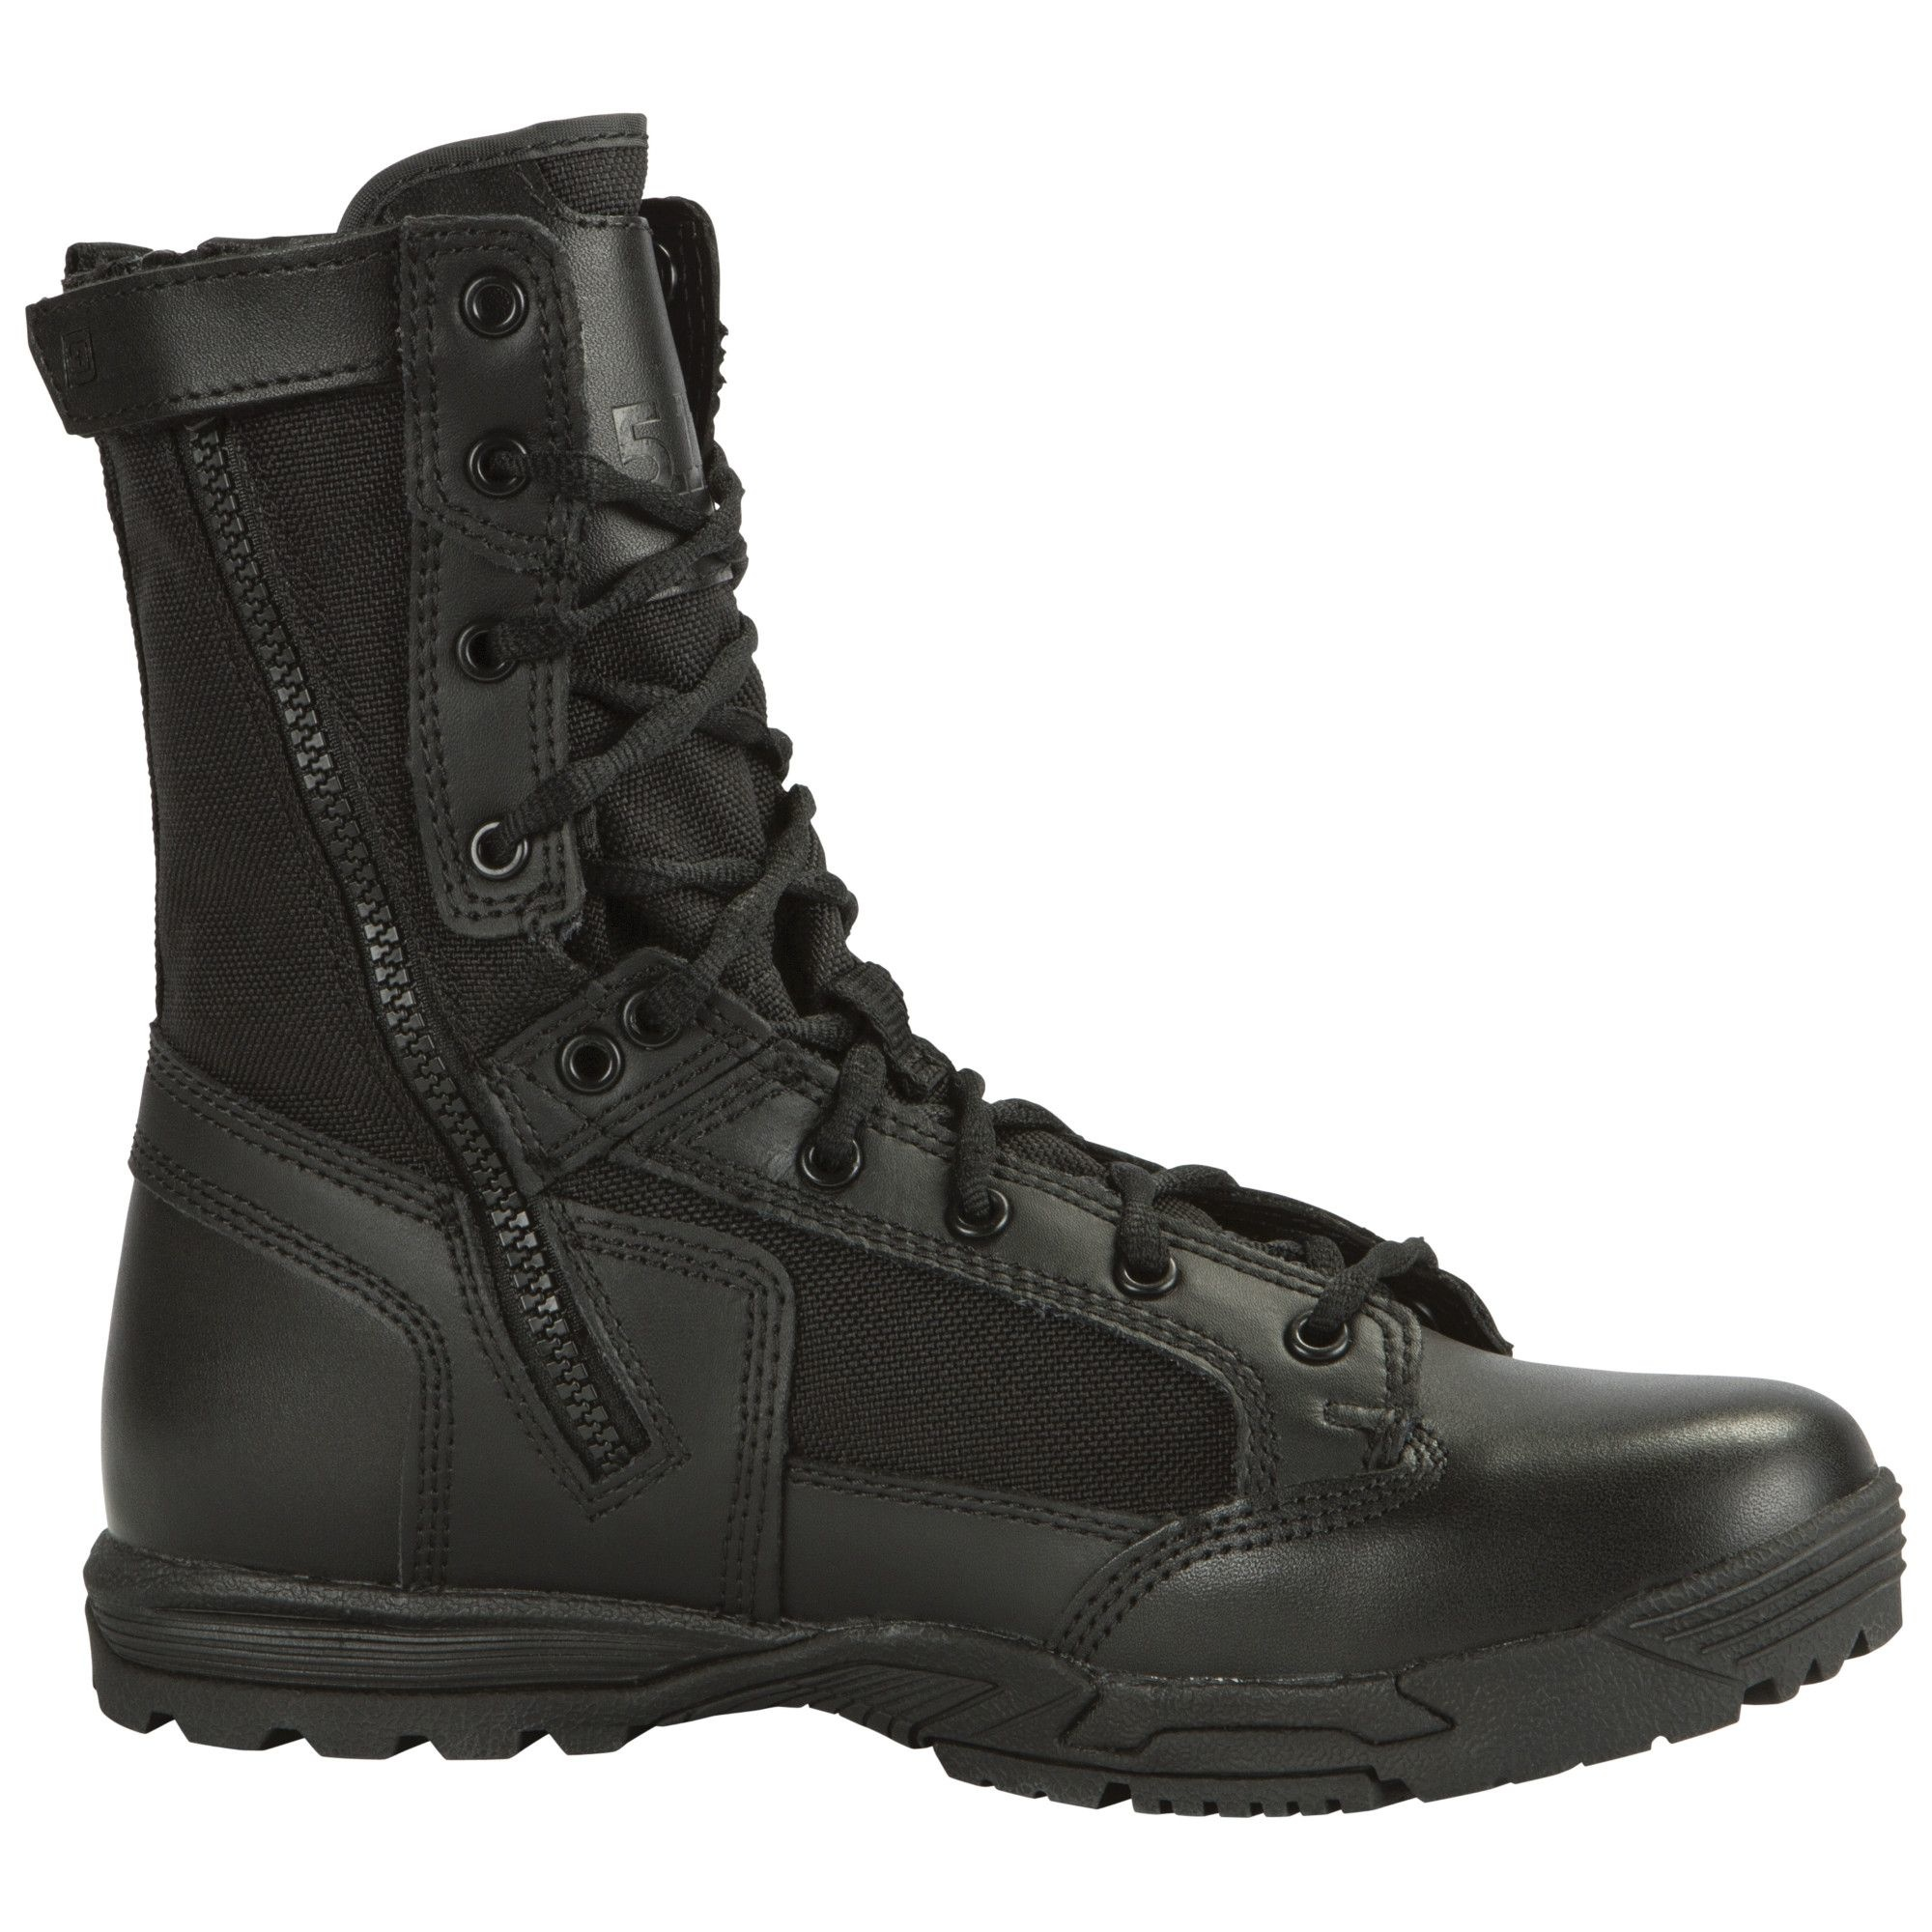 5.11 Tactical 5.11 Tactical Skyweight Side Zip Boot